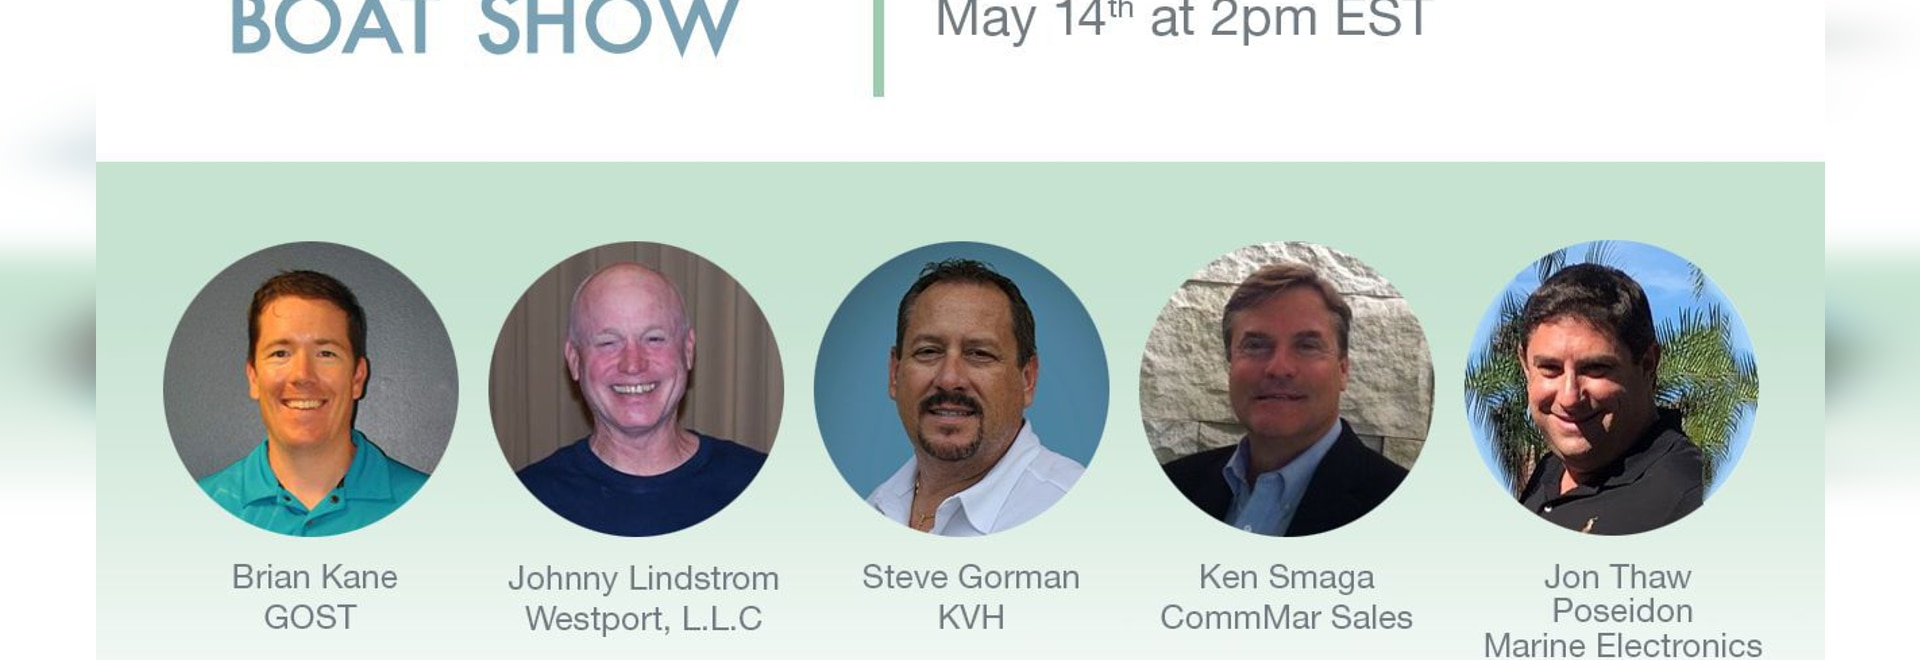 Learn About Internet and TV for Boats & Yachts at KVH Educational Seminars 5/14 and 5/20